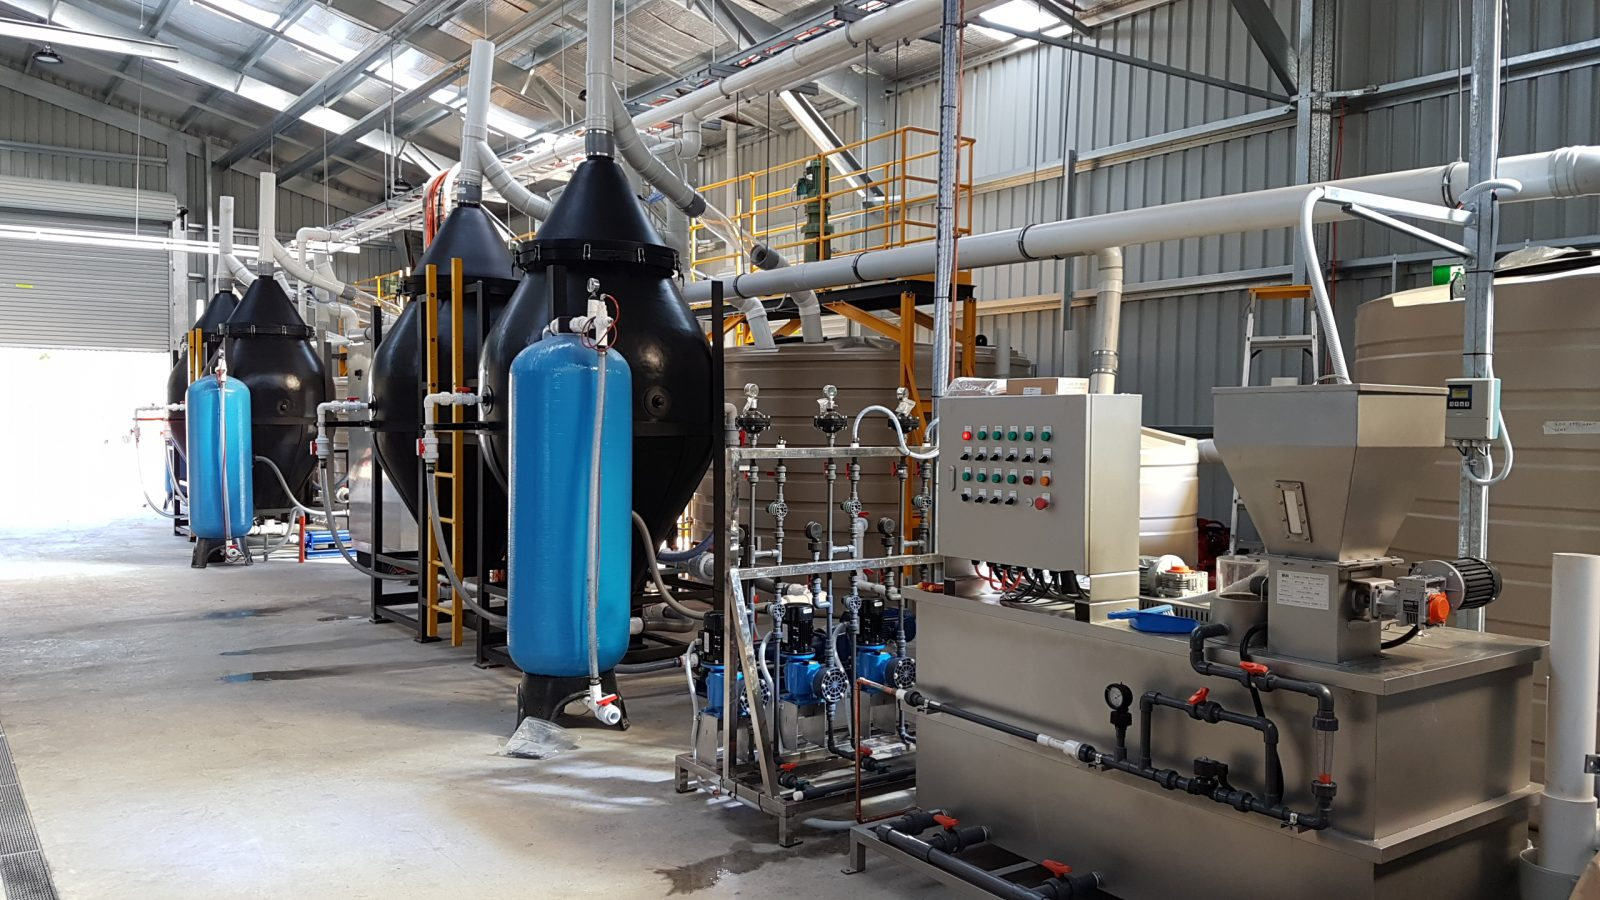 dairy wastewater treatment plant - Aerofloat